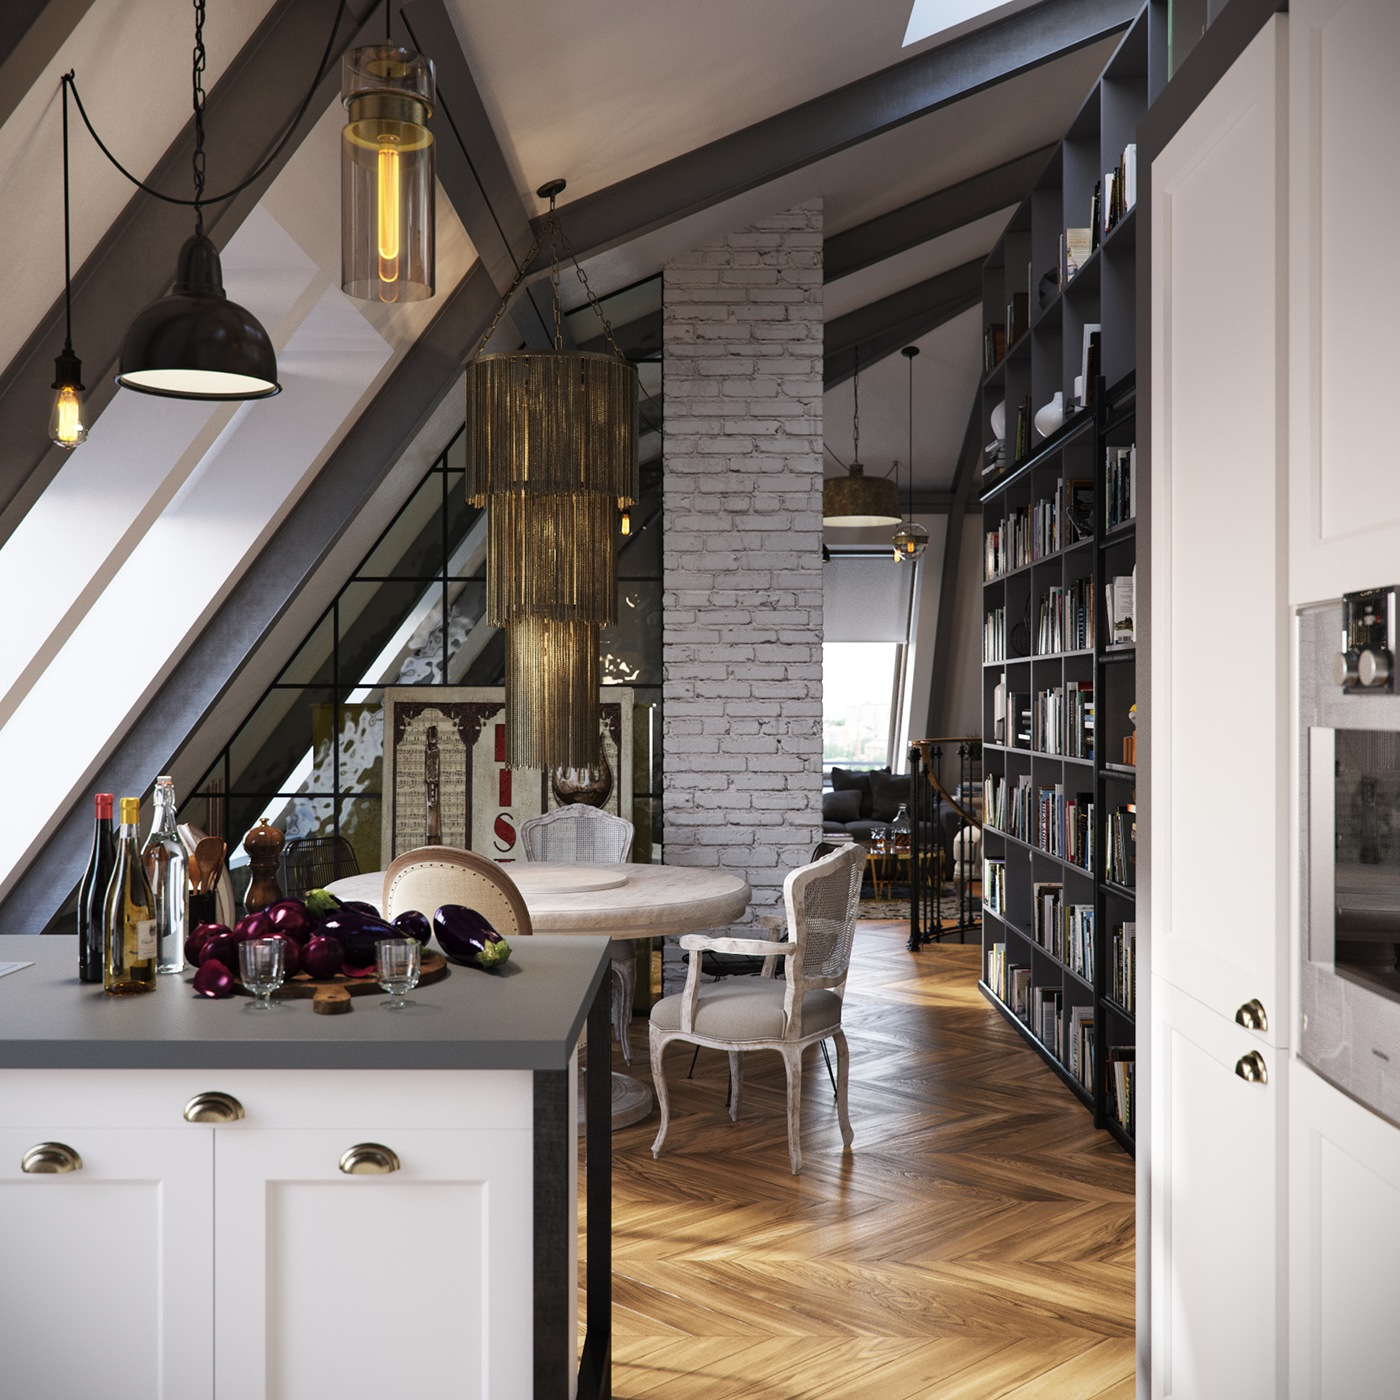 Loft Apartments: Three Dark Colored Loft Apartments With Exposed Brick Walls